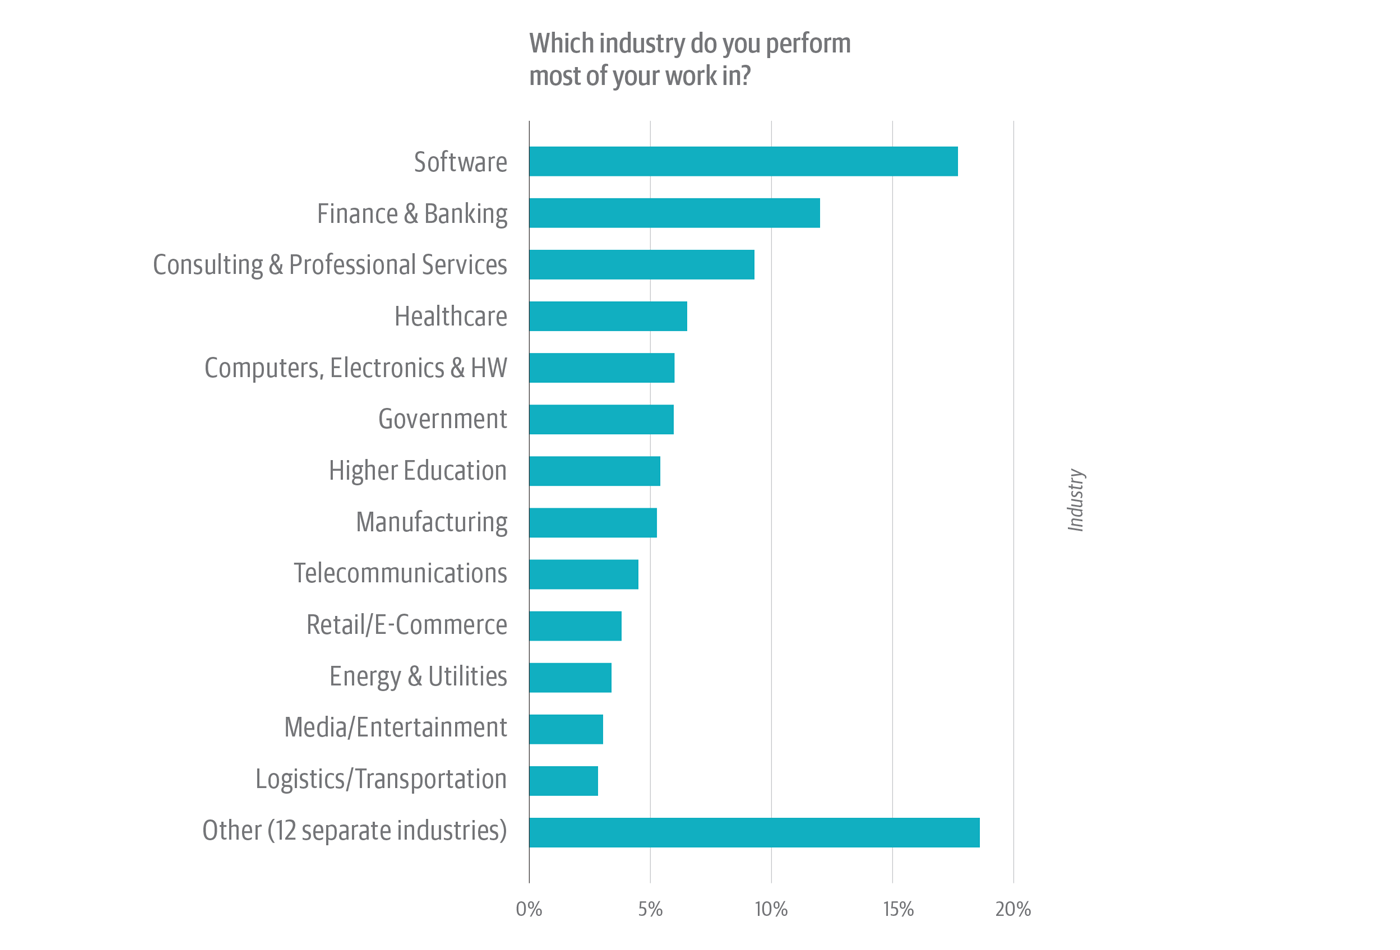 Industry of survey respondents